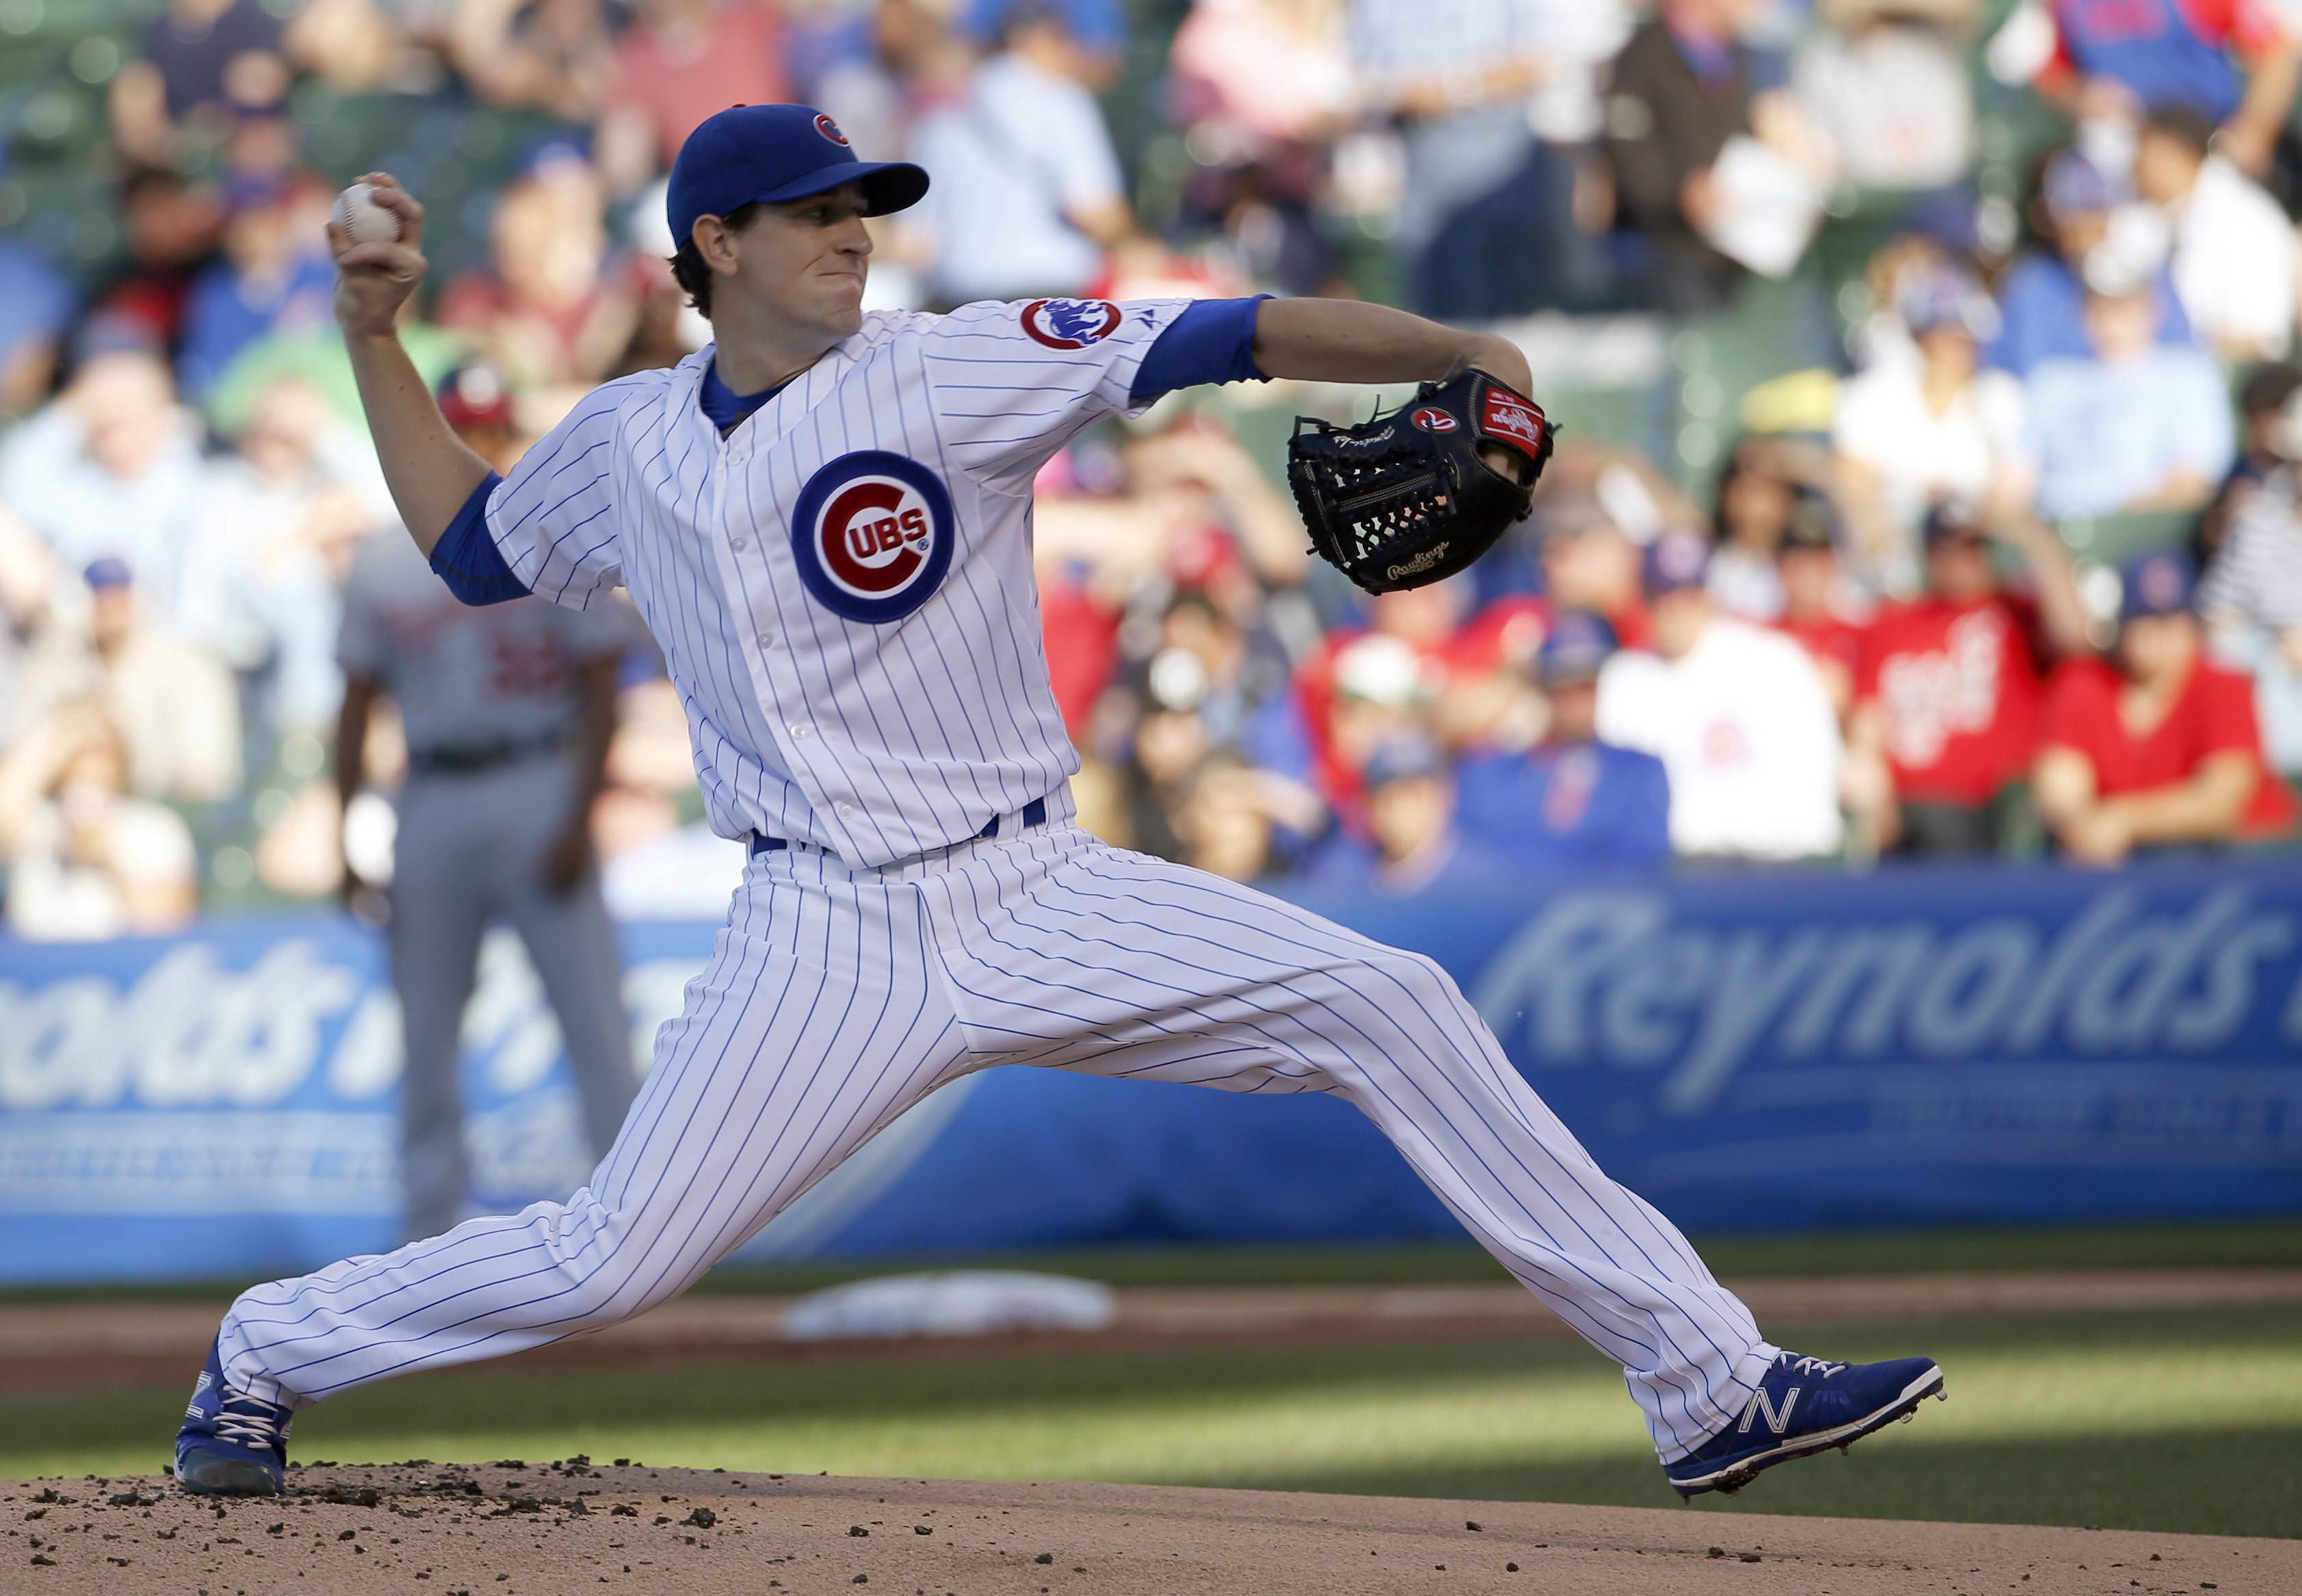 Chicago Cubs starting pitcher Kyle Hendricks delivers during the first inning of a baseball game against the Washington Nationals on Tuesday, May 26, 2015, in Chicago.